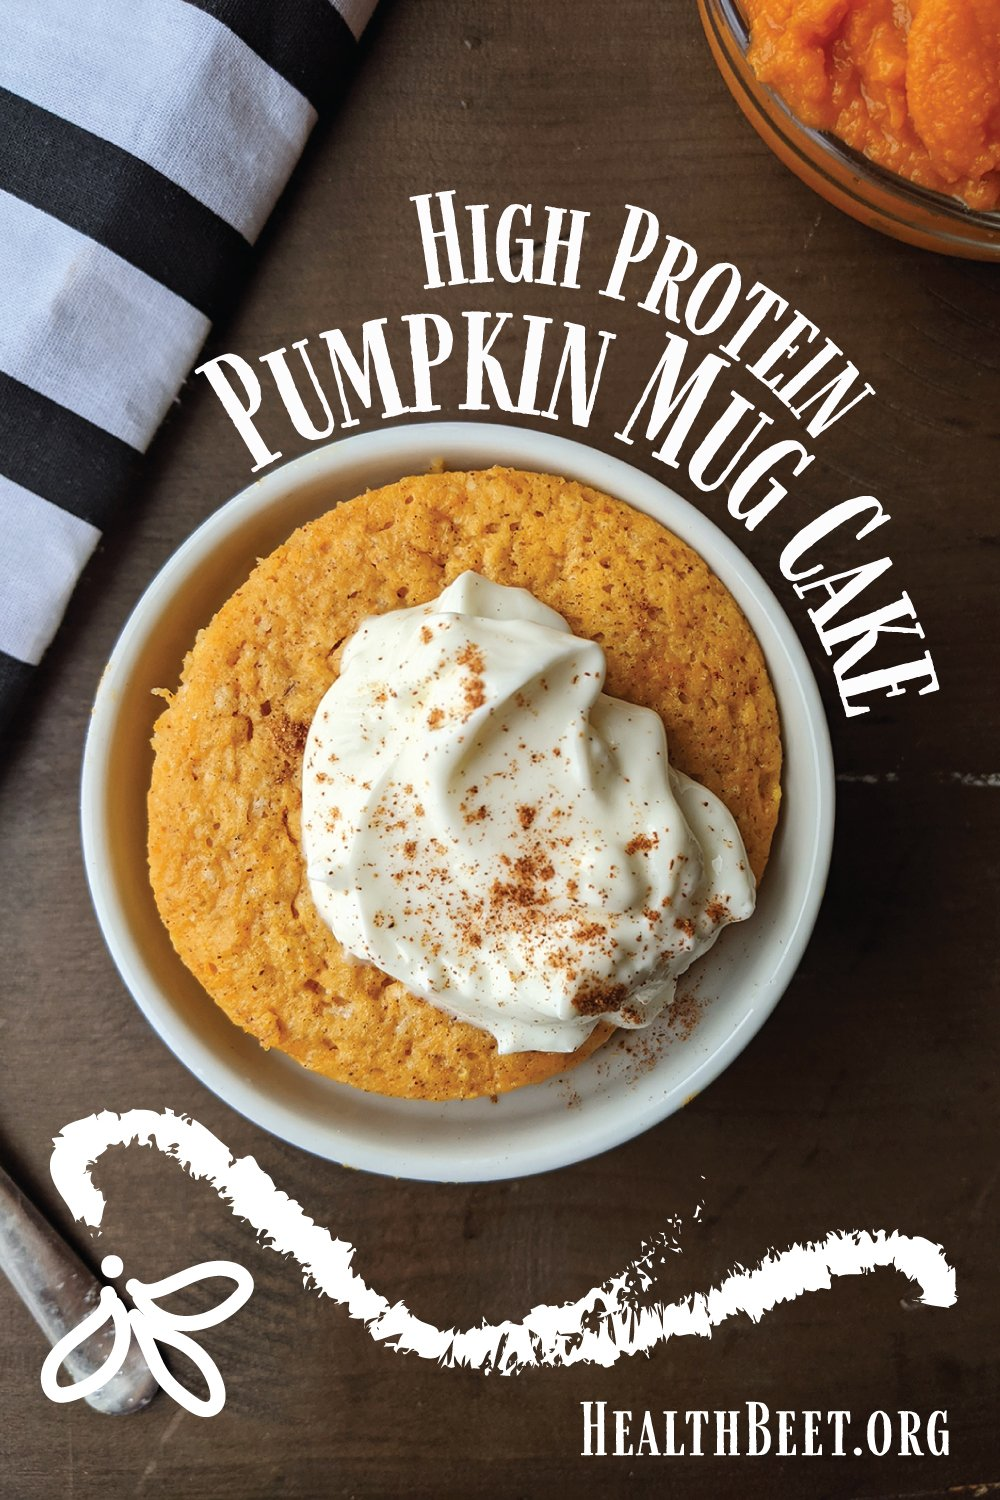 Low calorie, high protein pumpkin mug cake made with protein powder and canned pumpkin puree. Under 200 calories, with 30 grams of protein!